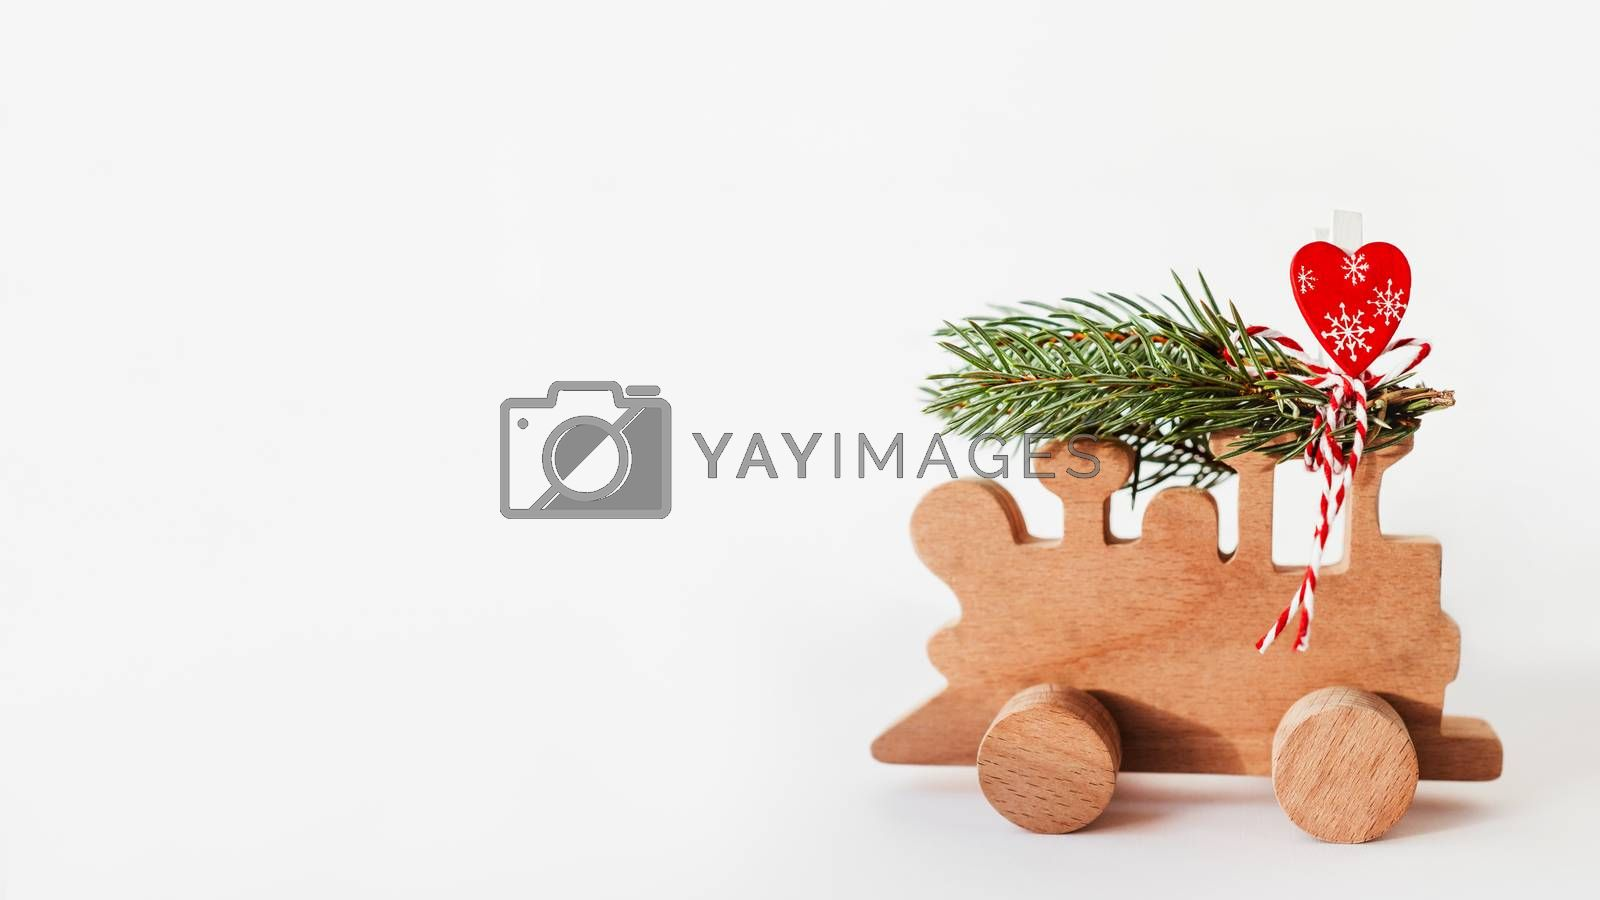 Wooden train with tied fir tree branches and red heart decoration. Cute symbol of Christmas tree brought home for New Year celebration. Winter holiday spirit. Copy space on white background. by aksenovko